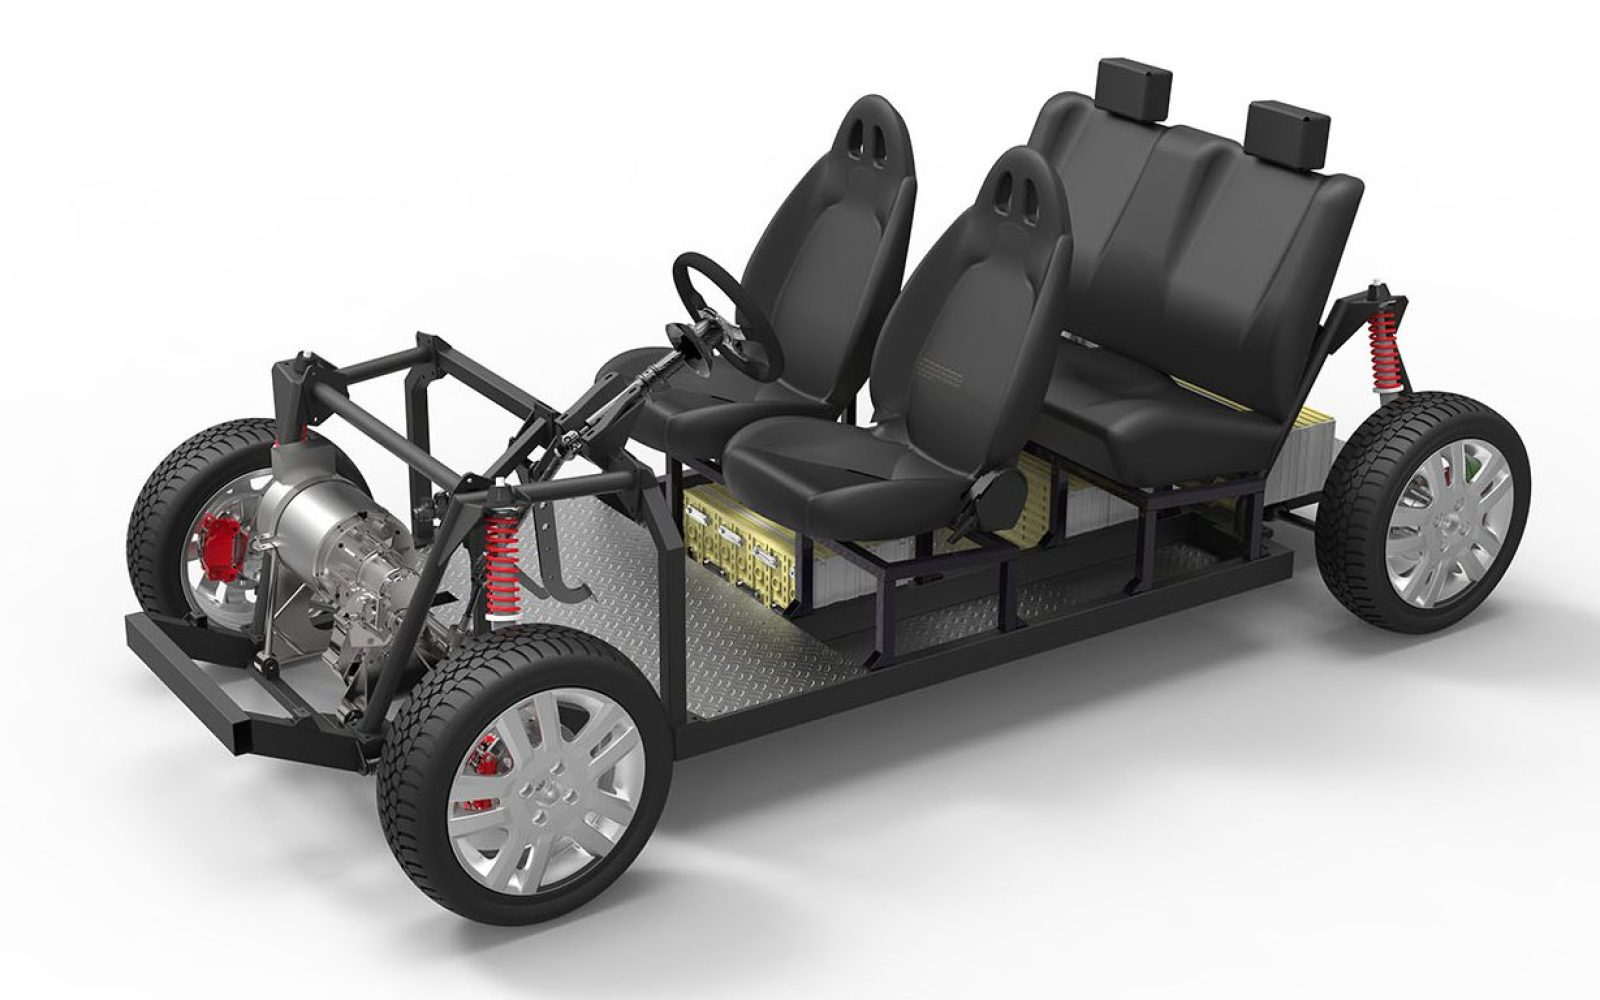 A $12,000 open-source hardware platform to develop electric vehicles